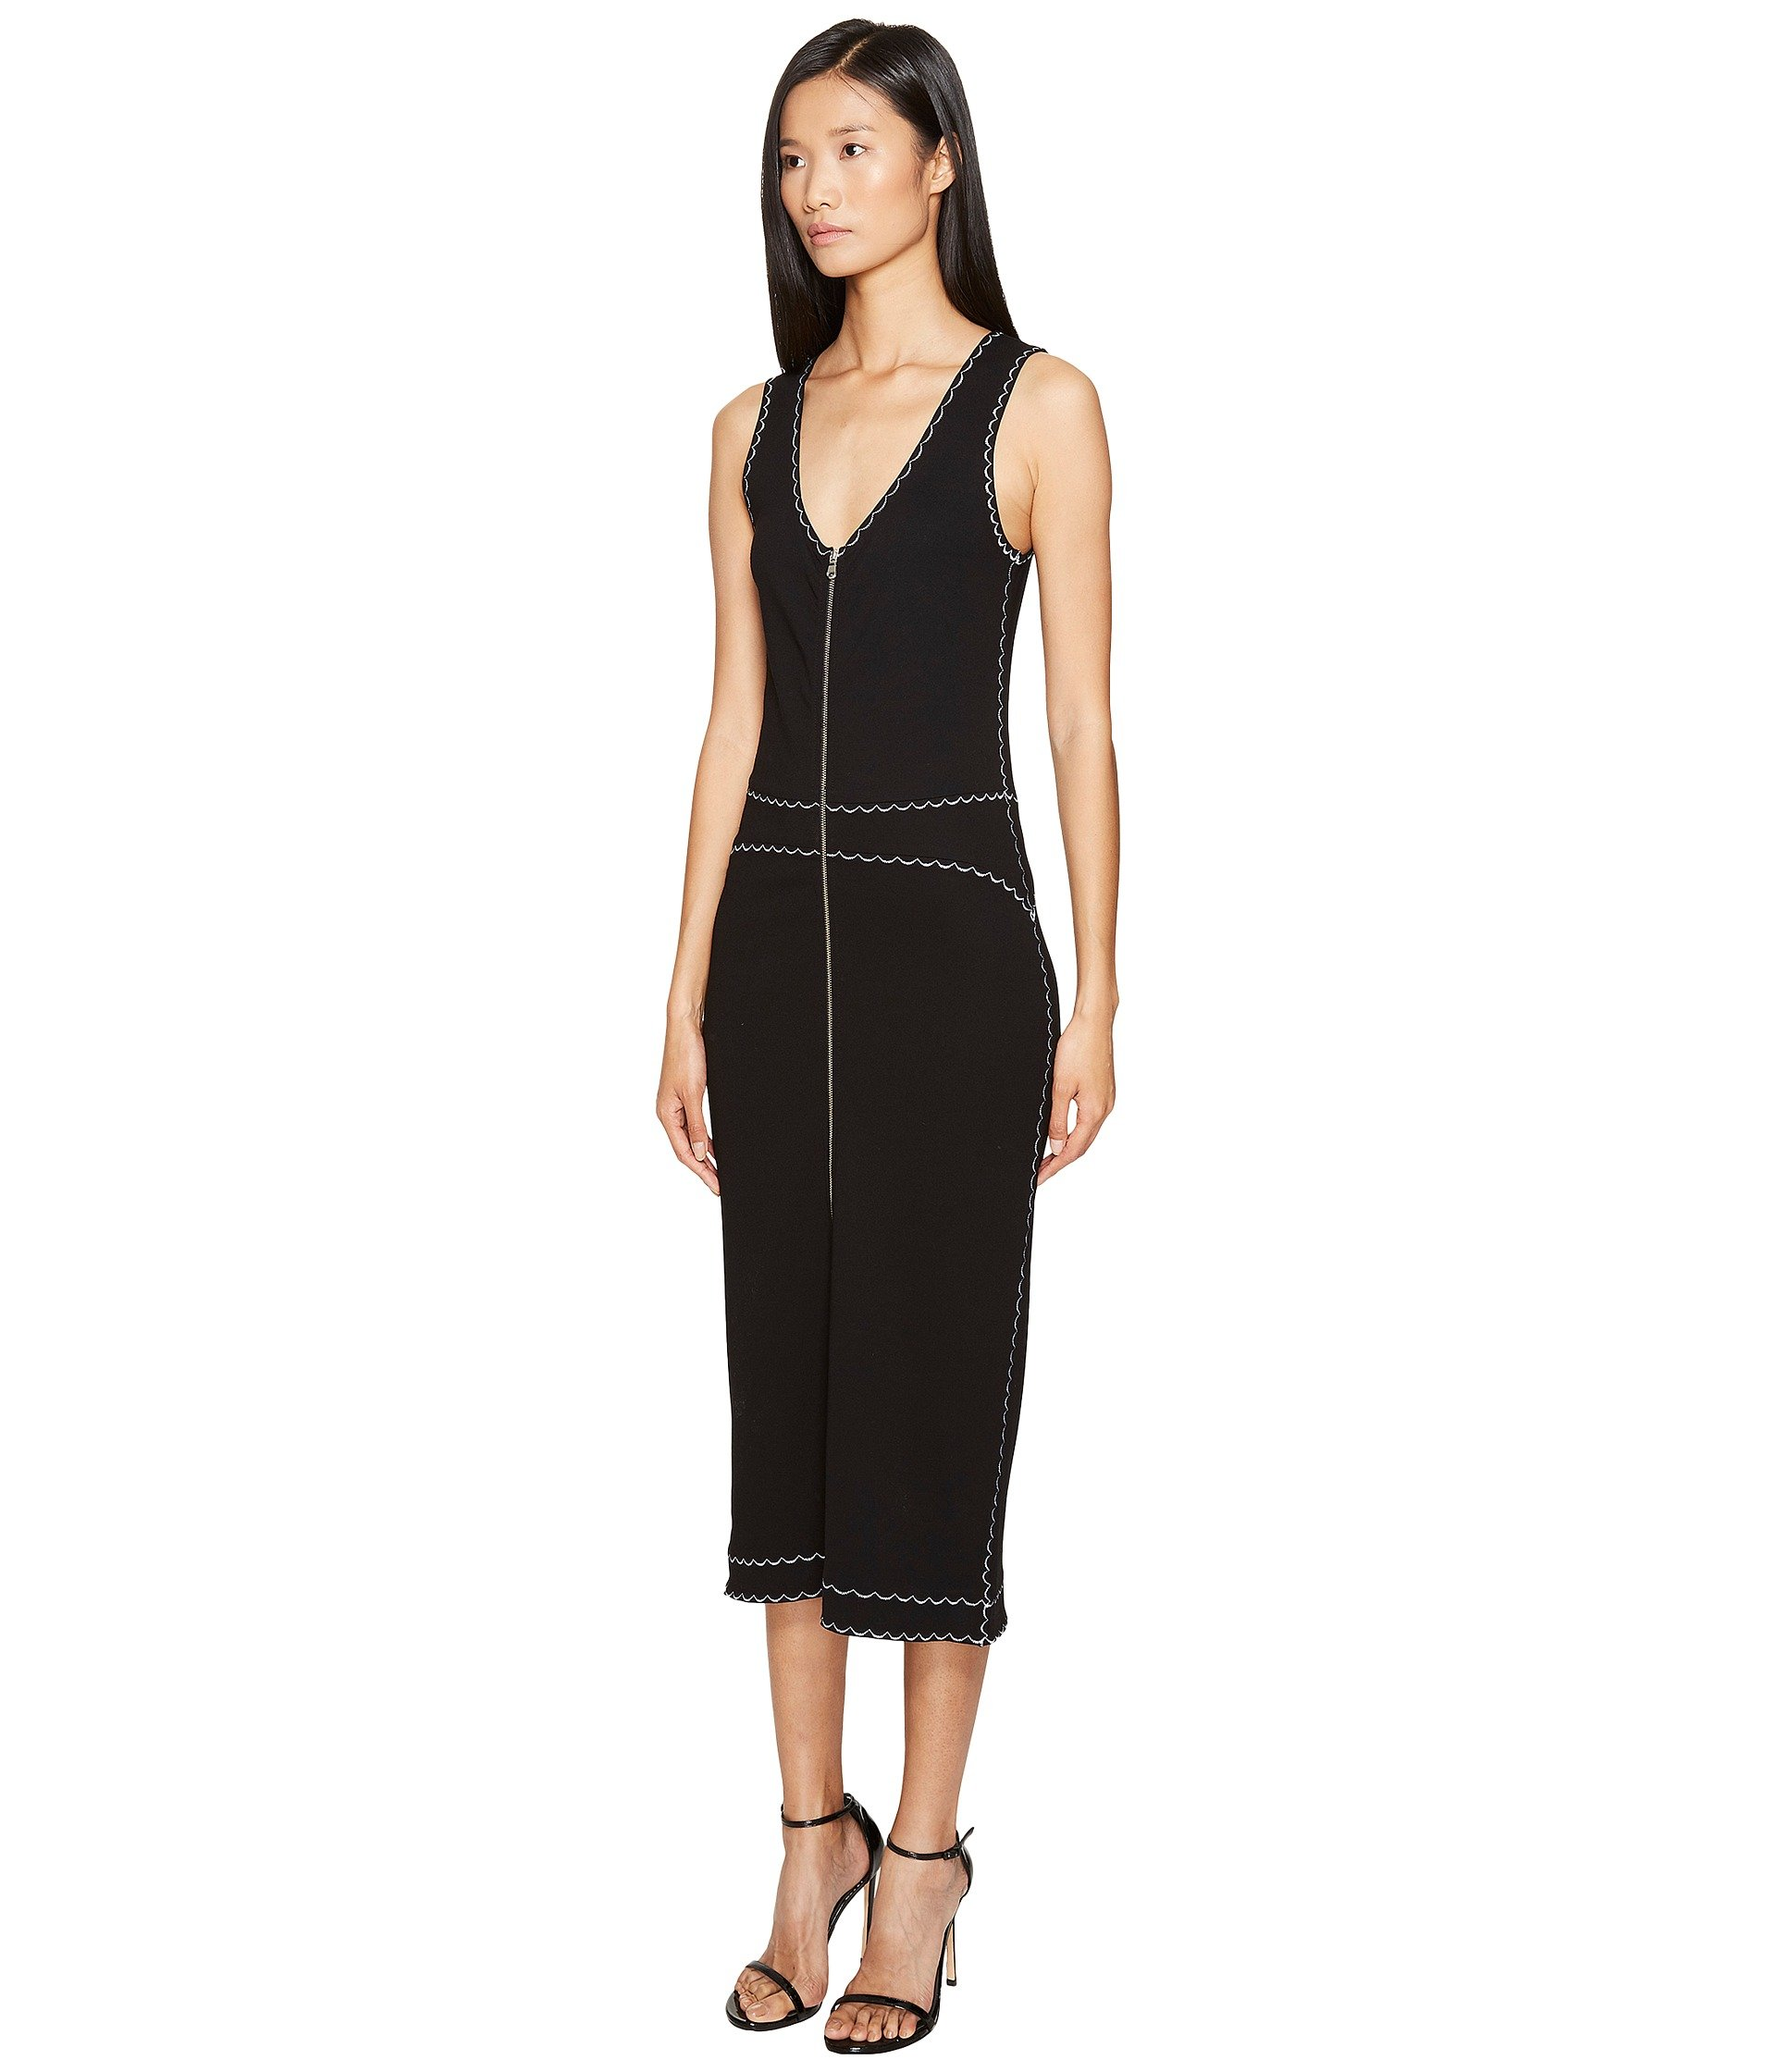 Mcq Alexander Mcqueen Woman Embroidered Ponte Midi Dress Black Size S Alexander McQueen Free Shipping Low Shipping Clearance Low Price Wholesale Latest For Sale YiqVuiRgQg